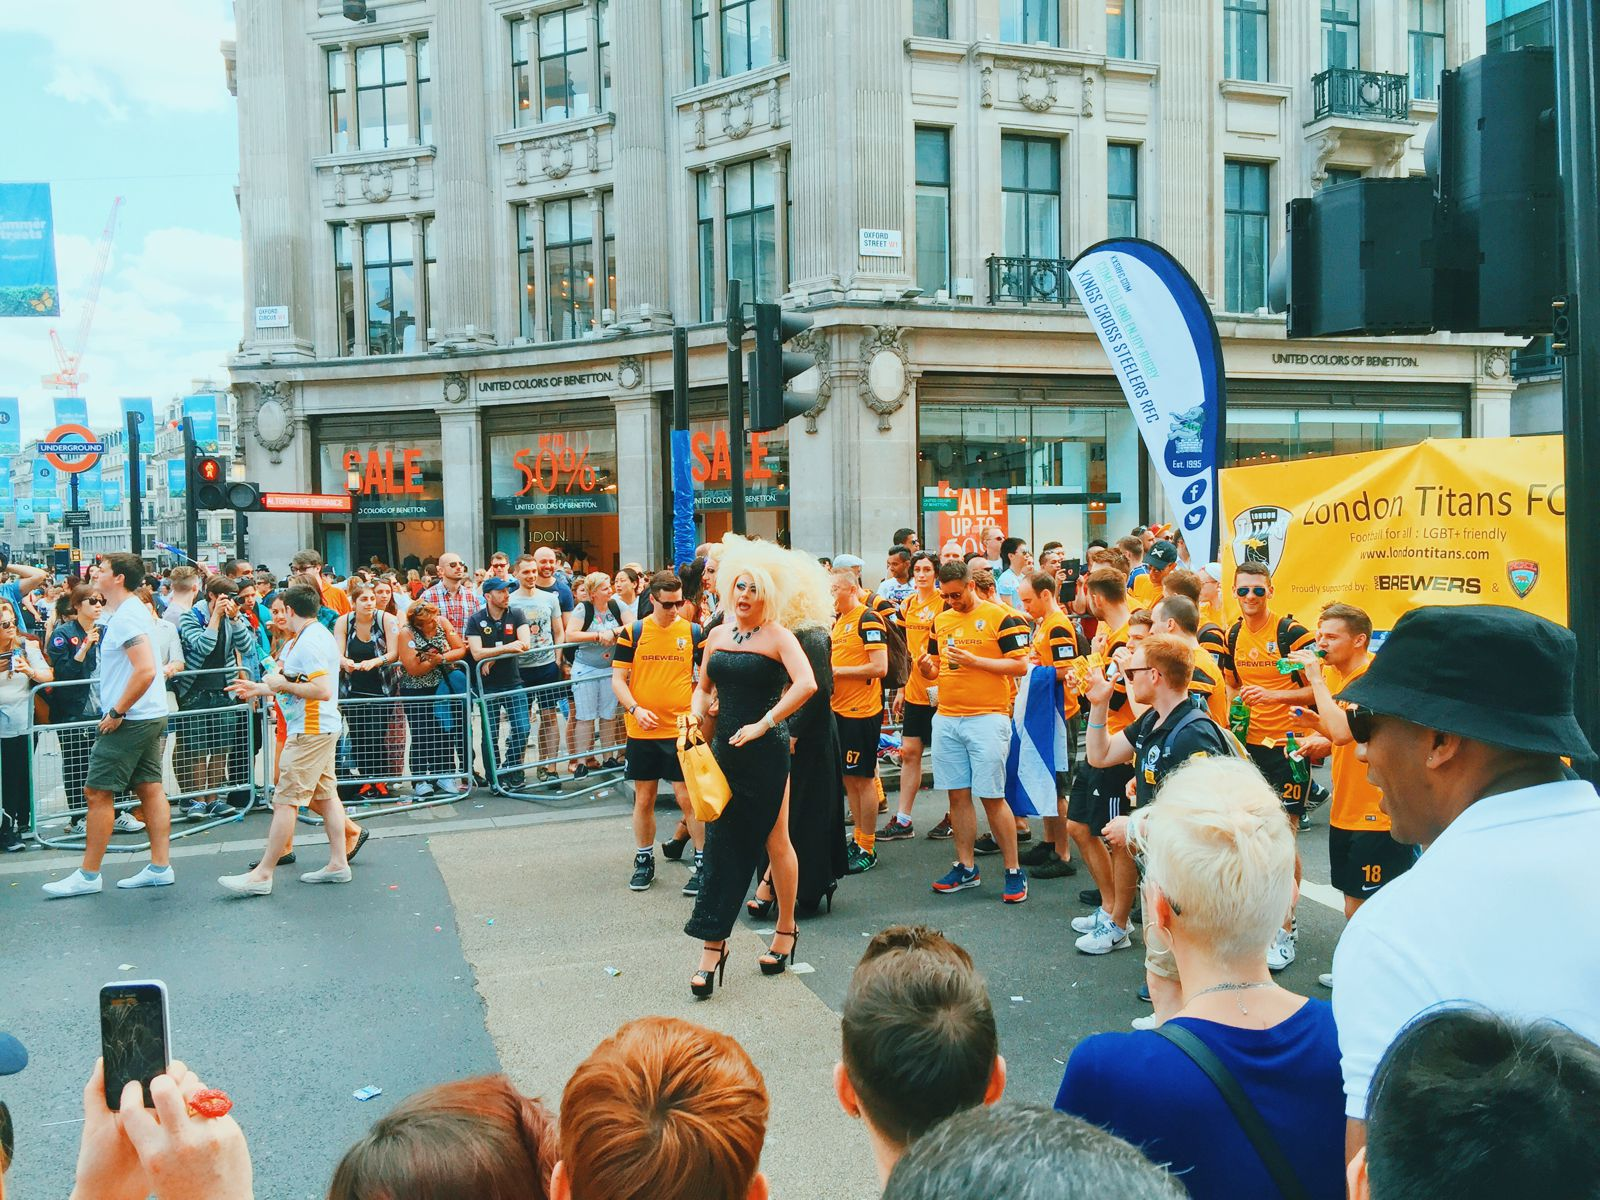 There Was A Party In London This Weekend... Pride in London (4)